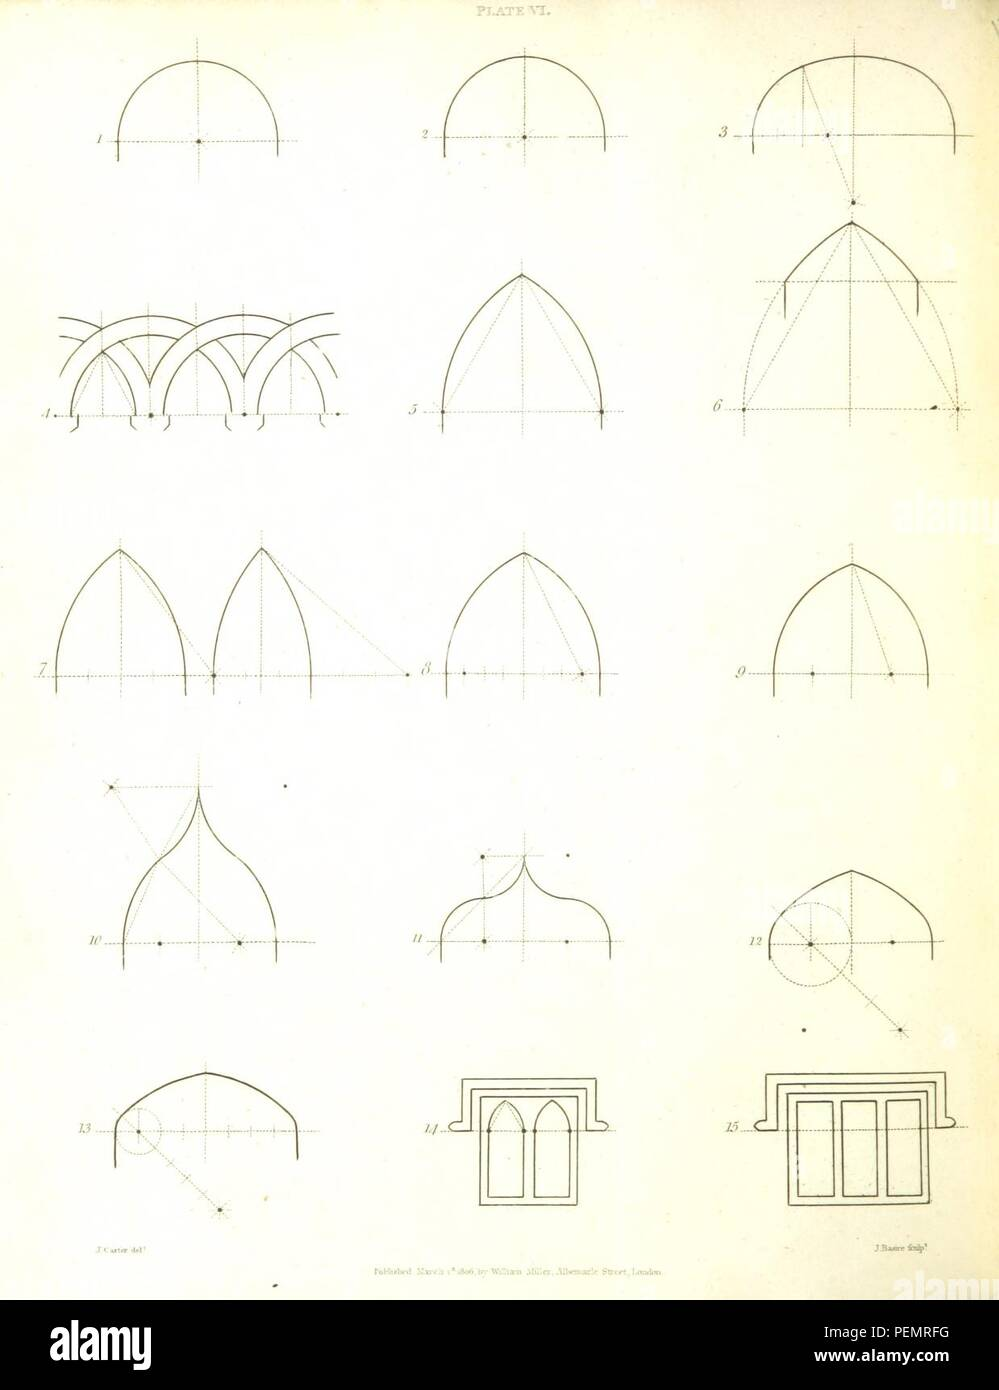 page 162 of 'Introduction to the History of Cambria, from the first invasion of Britain by the Romans to ... 1188, etc. [By Sir R. C. Hoare, Bart.] Progress of Architecture from a period nearly coeval with the Con 0436. - Stock Image